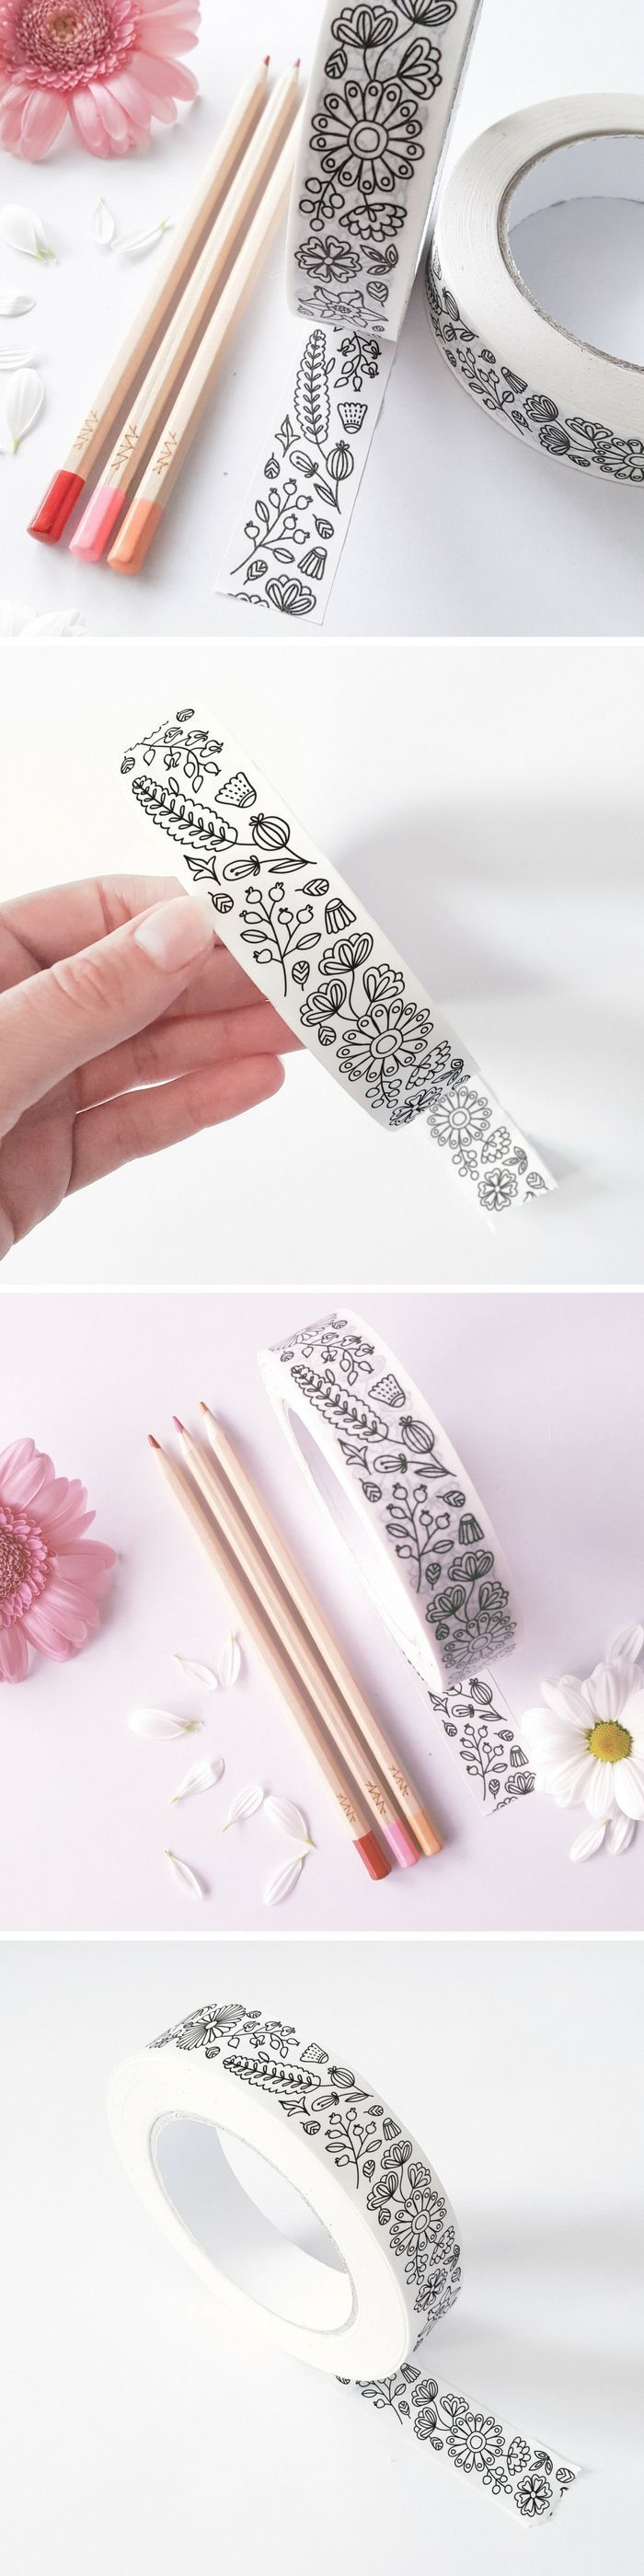 So much coloring fun!!! These floral patterns would be awesome to decorate my school notebooks! They work with pencils, which is pretty awesome for all paper crafts.